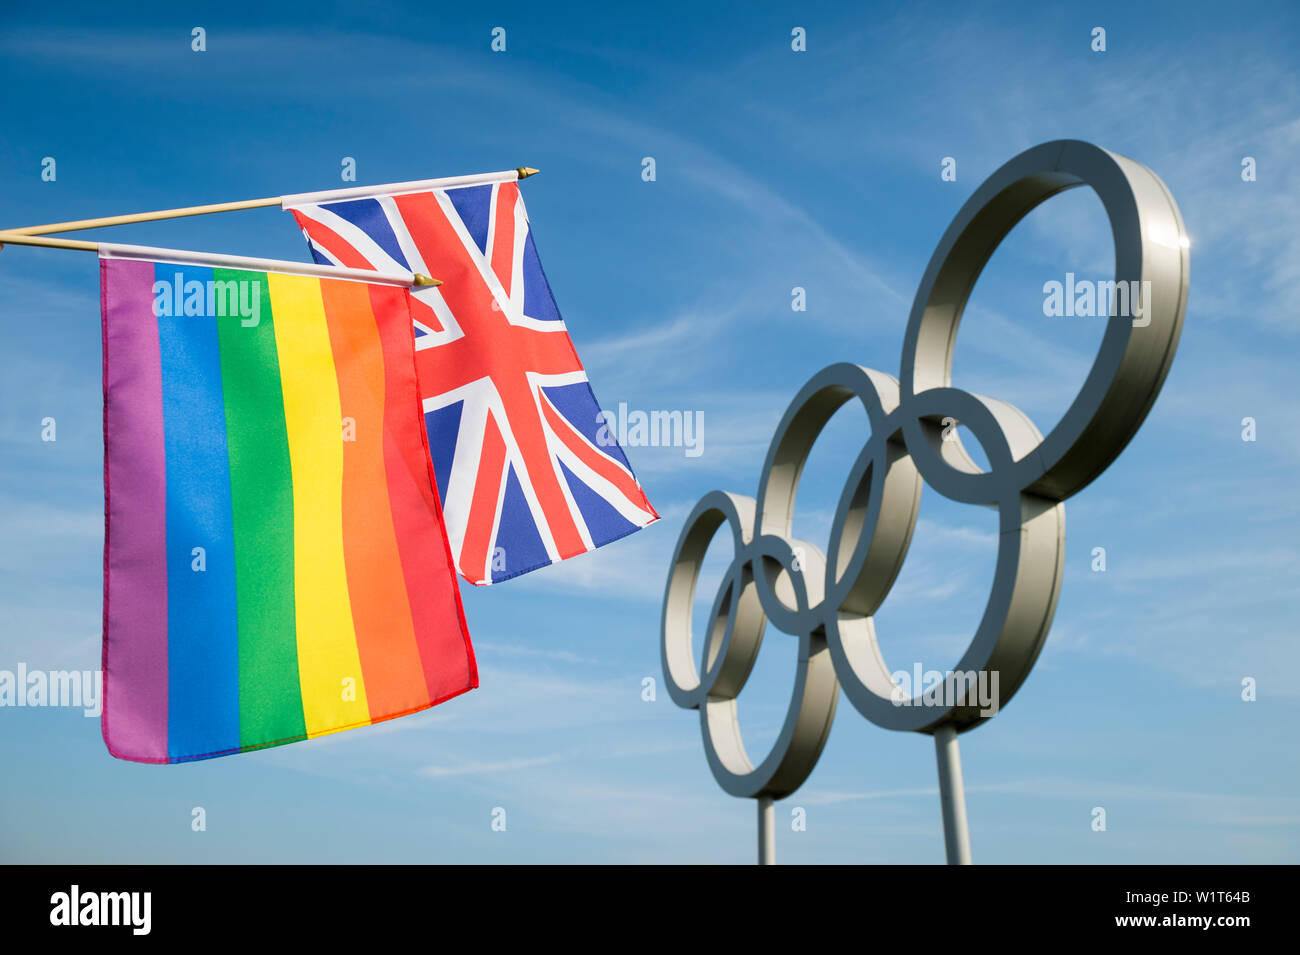 LONDON - MAY 4, 2019: A rainbow colored gay pride flag hangs together with a Japanese flag in front of Olympic Rings against bright blue sky. Stock Photo